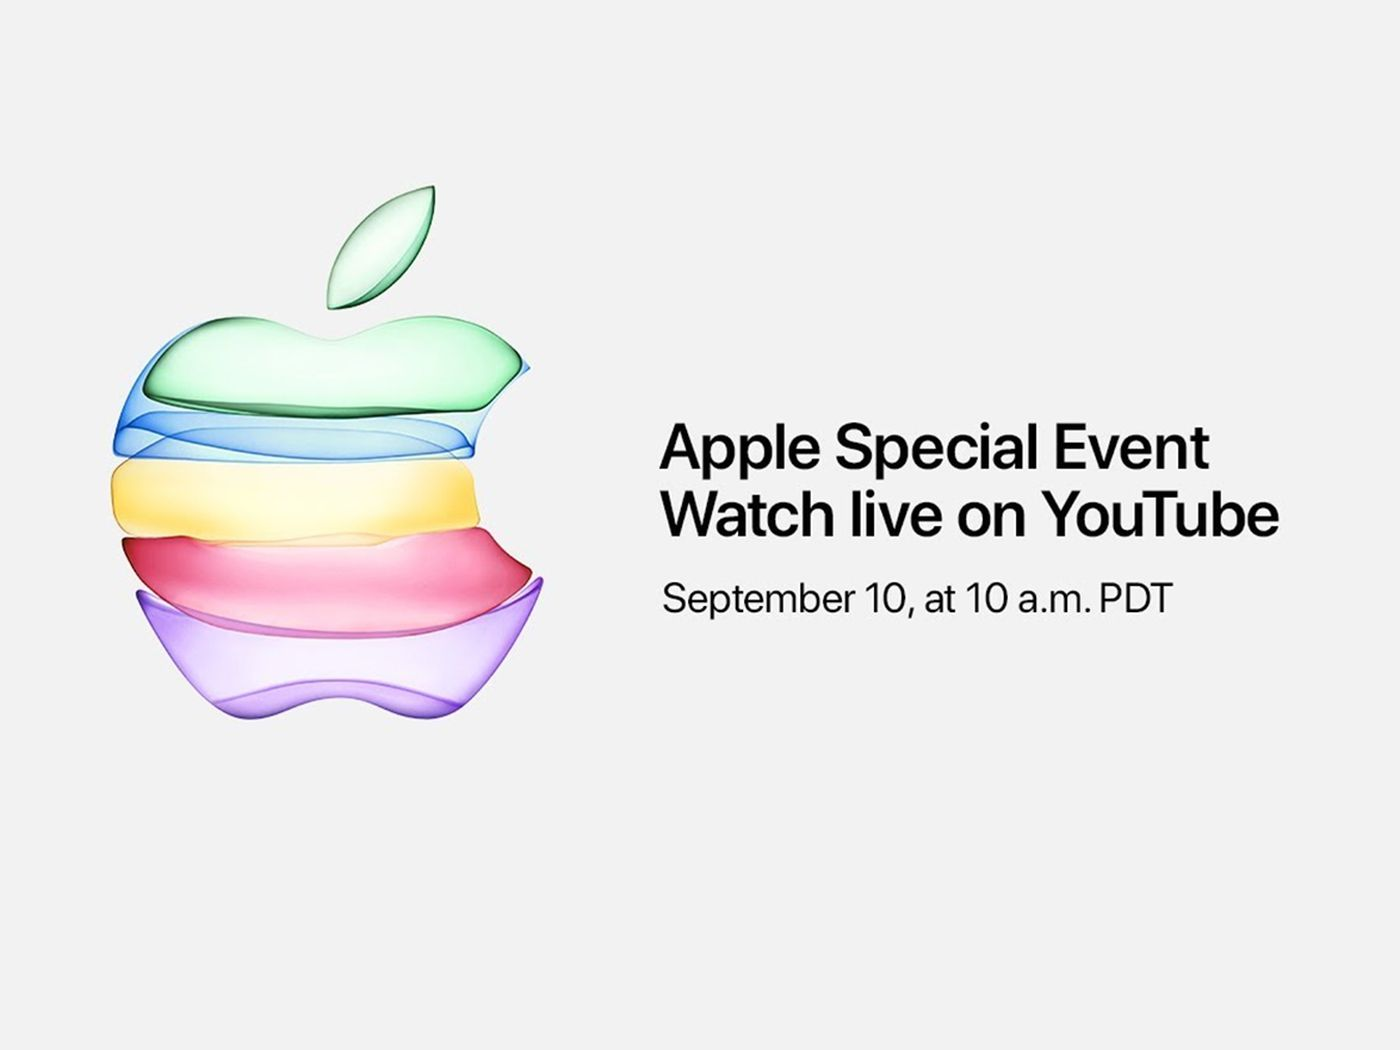 Apple will live stream its iPhone 11 event on YouTube for